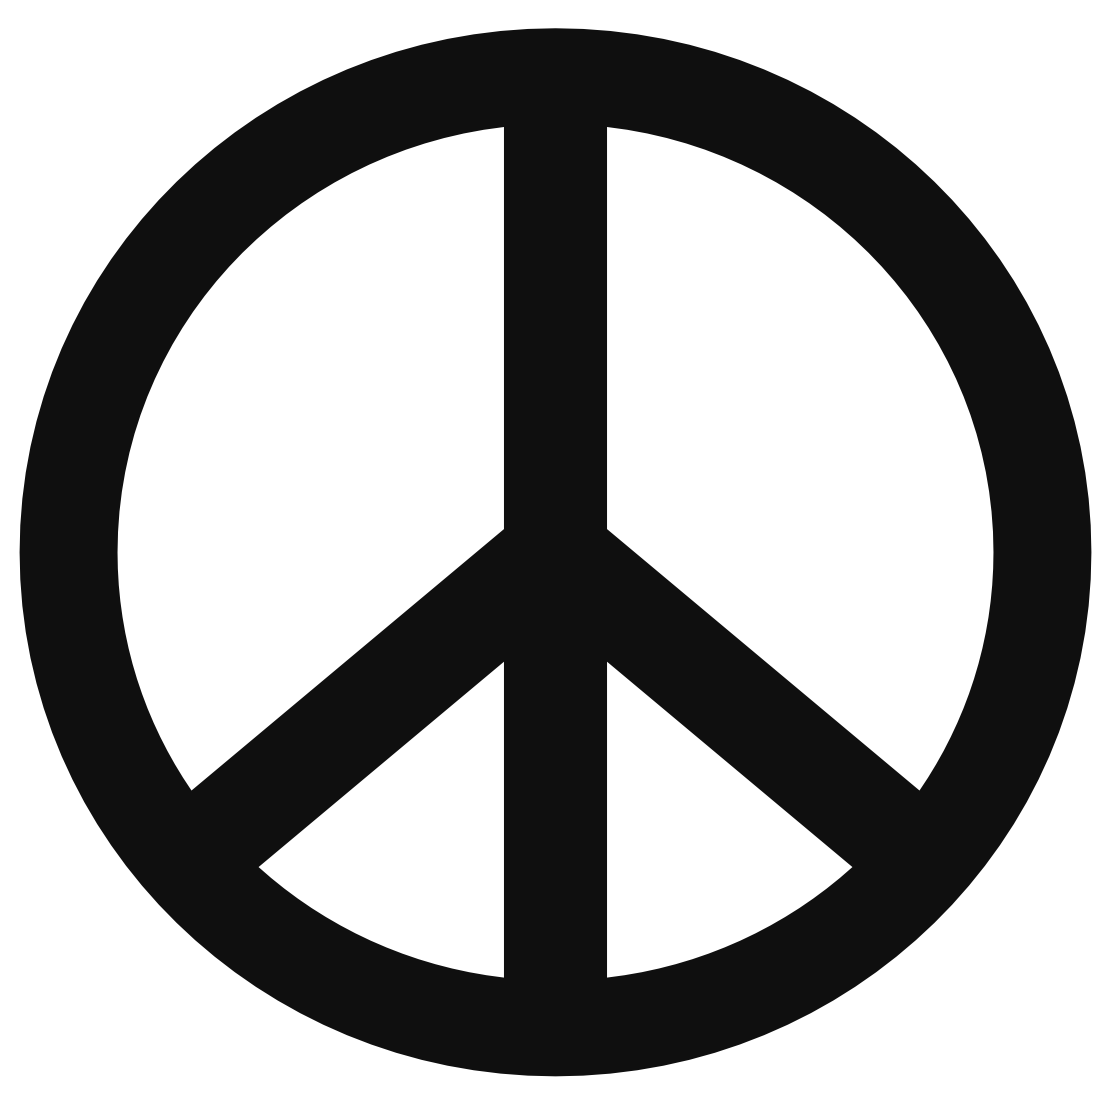 Peace sign templates clipart.